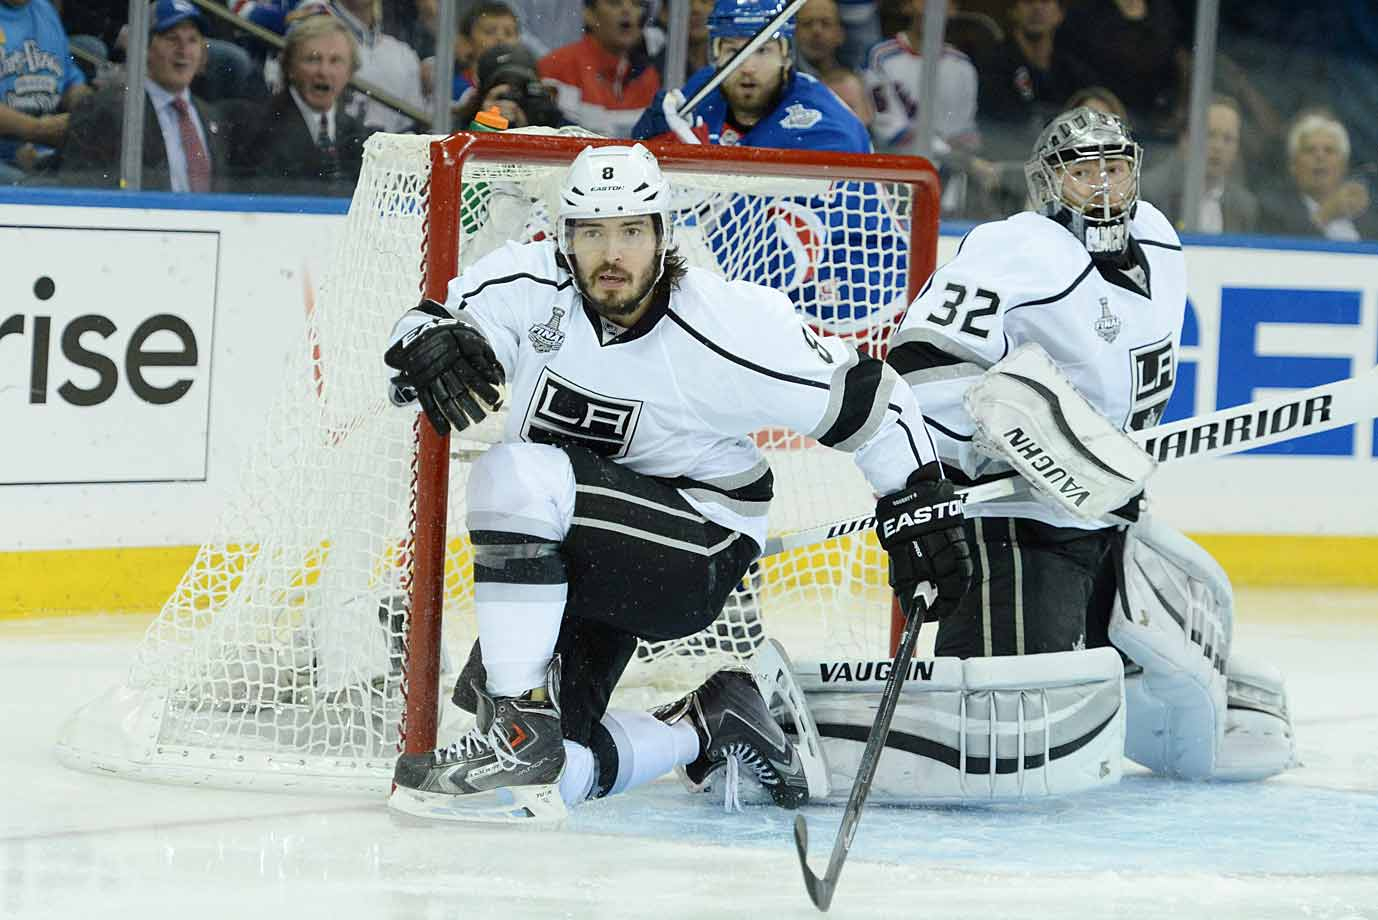 The rookie once known as Dough Boy has become a pillar of the two-time Stanley Cup-winning Kings. An exceptionally creative defenseman, he possesses one of the game's best shots and array of bodychecks. And few players seem to have more fun playing the game. He also has two Olympic gold medals on his mantle.